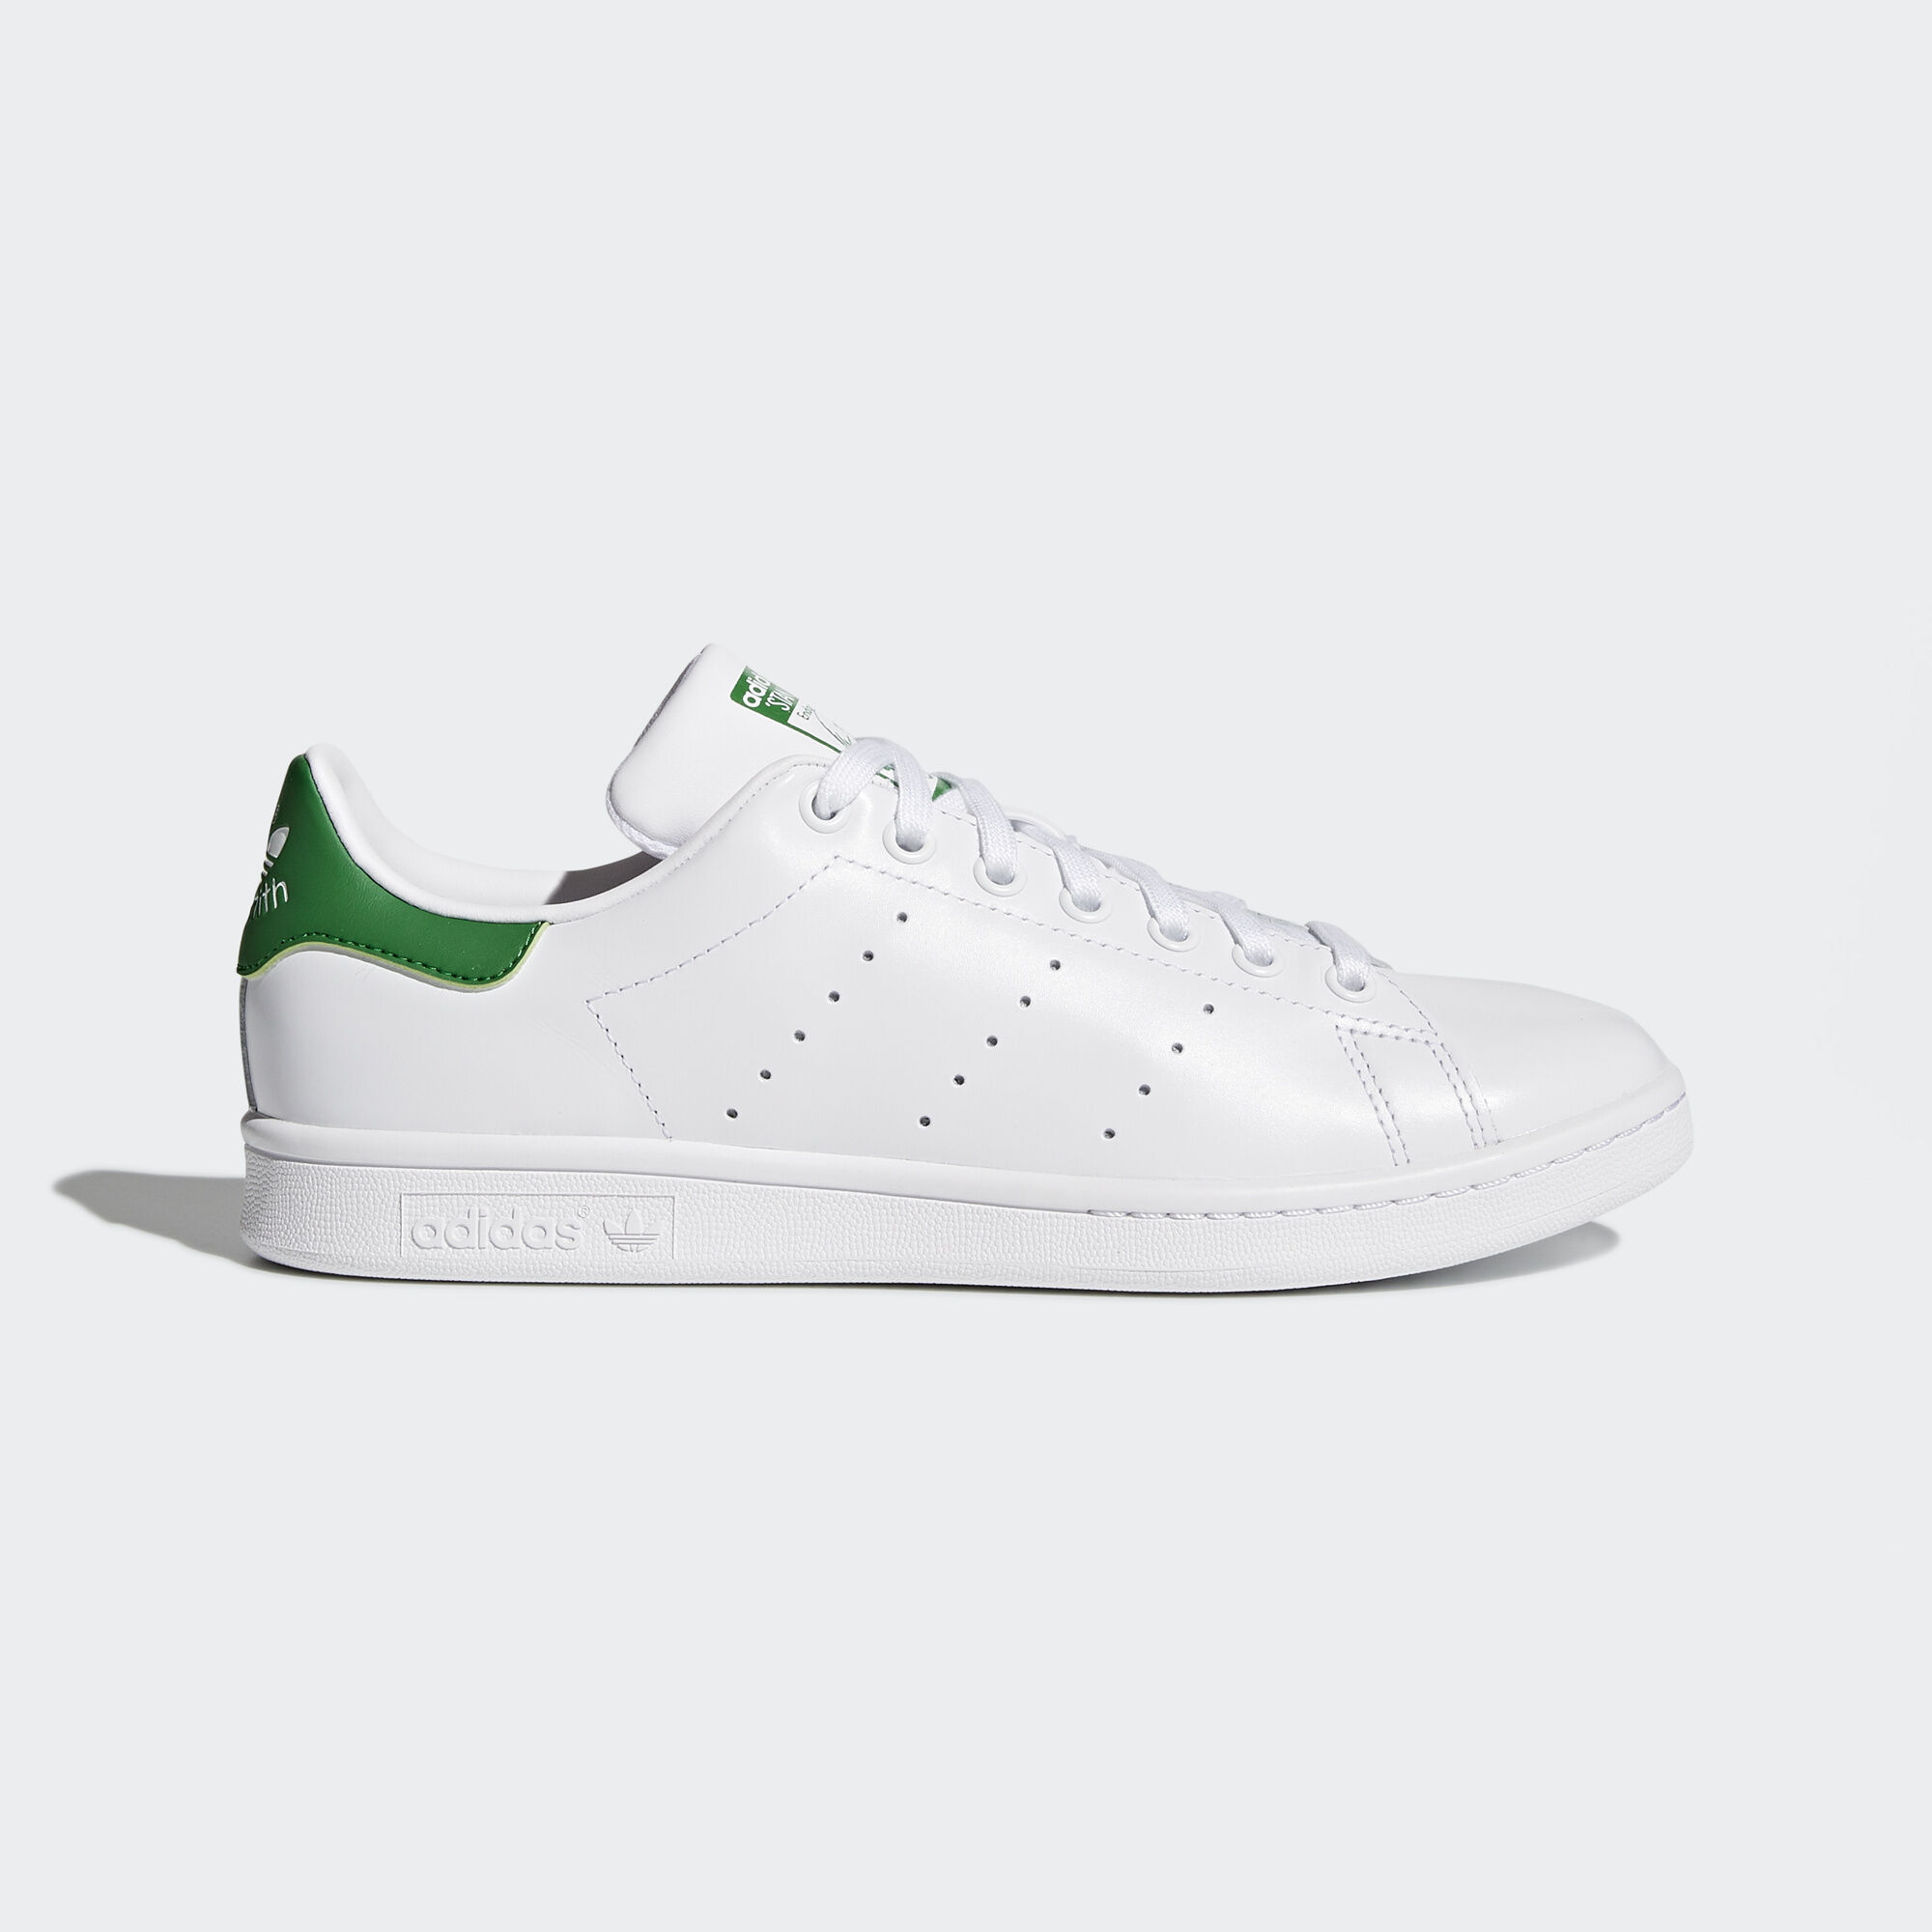 Adidas x Juun J Superstar 80s (White) End